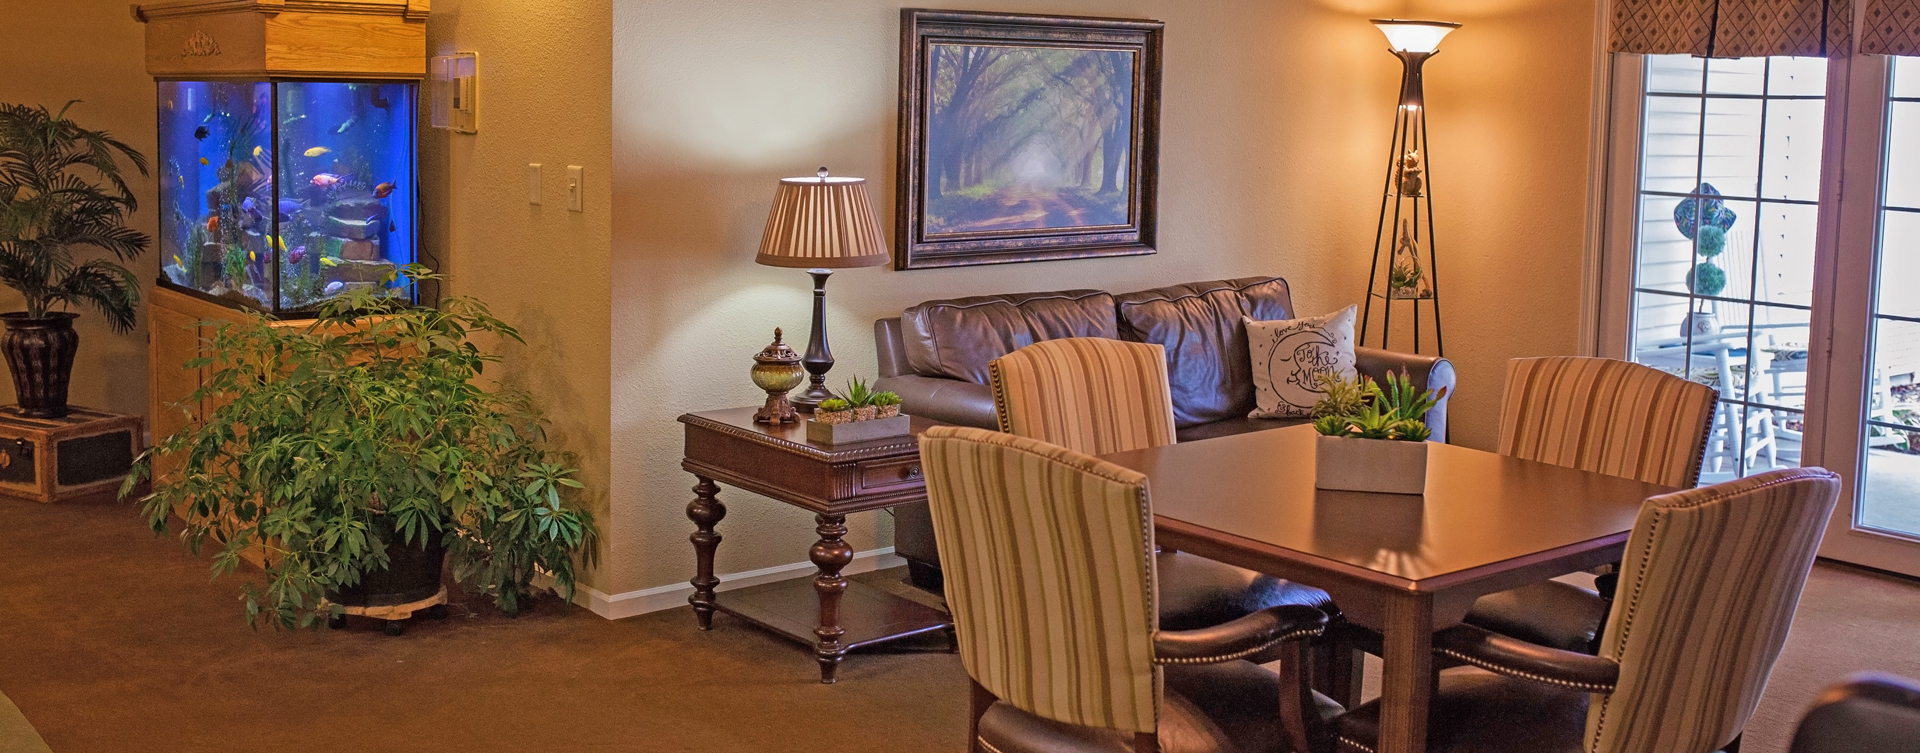 Enjoy a good card game with friends in the activity room at Bickford of Cedar Falls